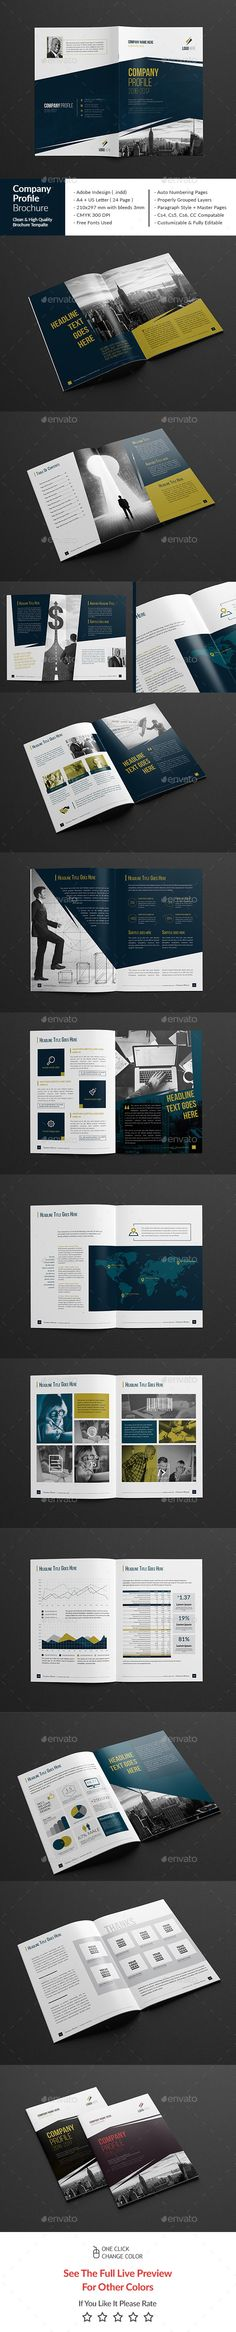 Company Profile - Square Company profile, Brochure template and - professional business profile template